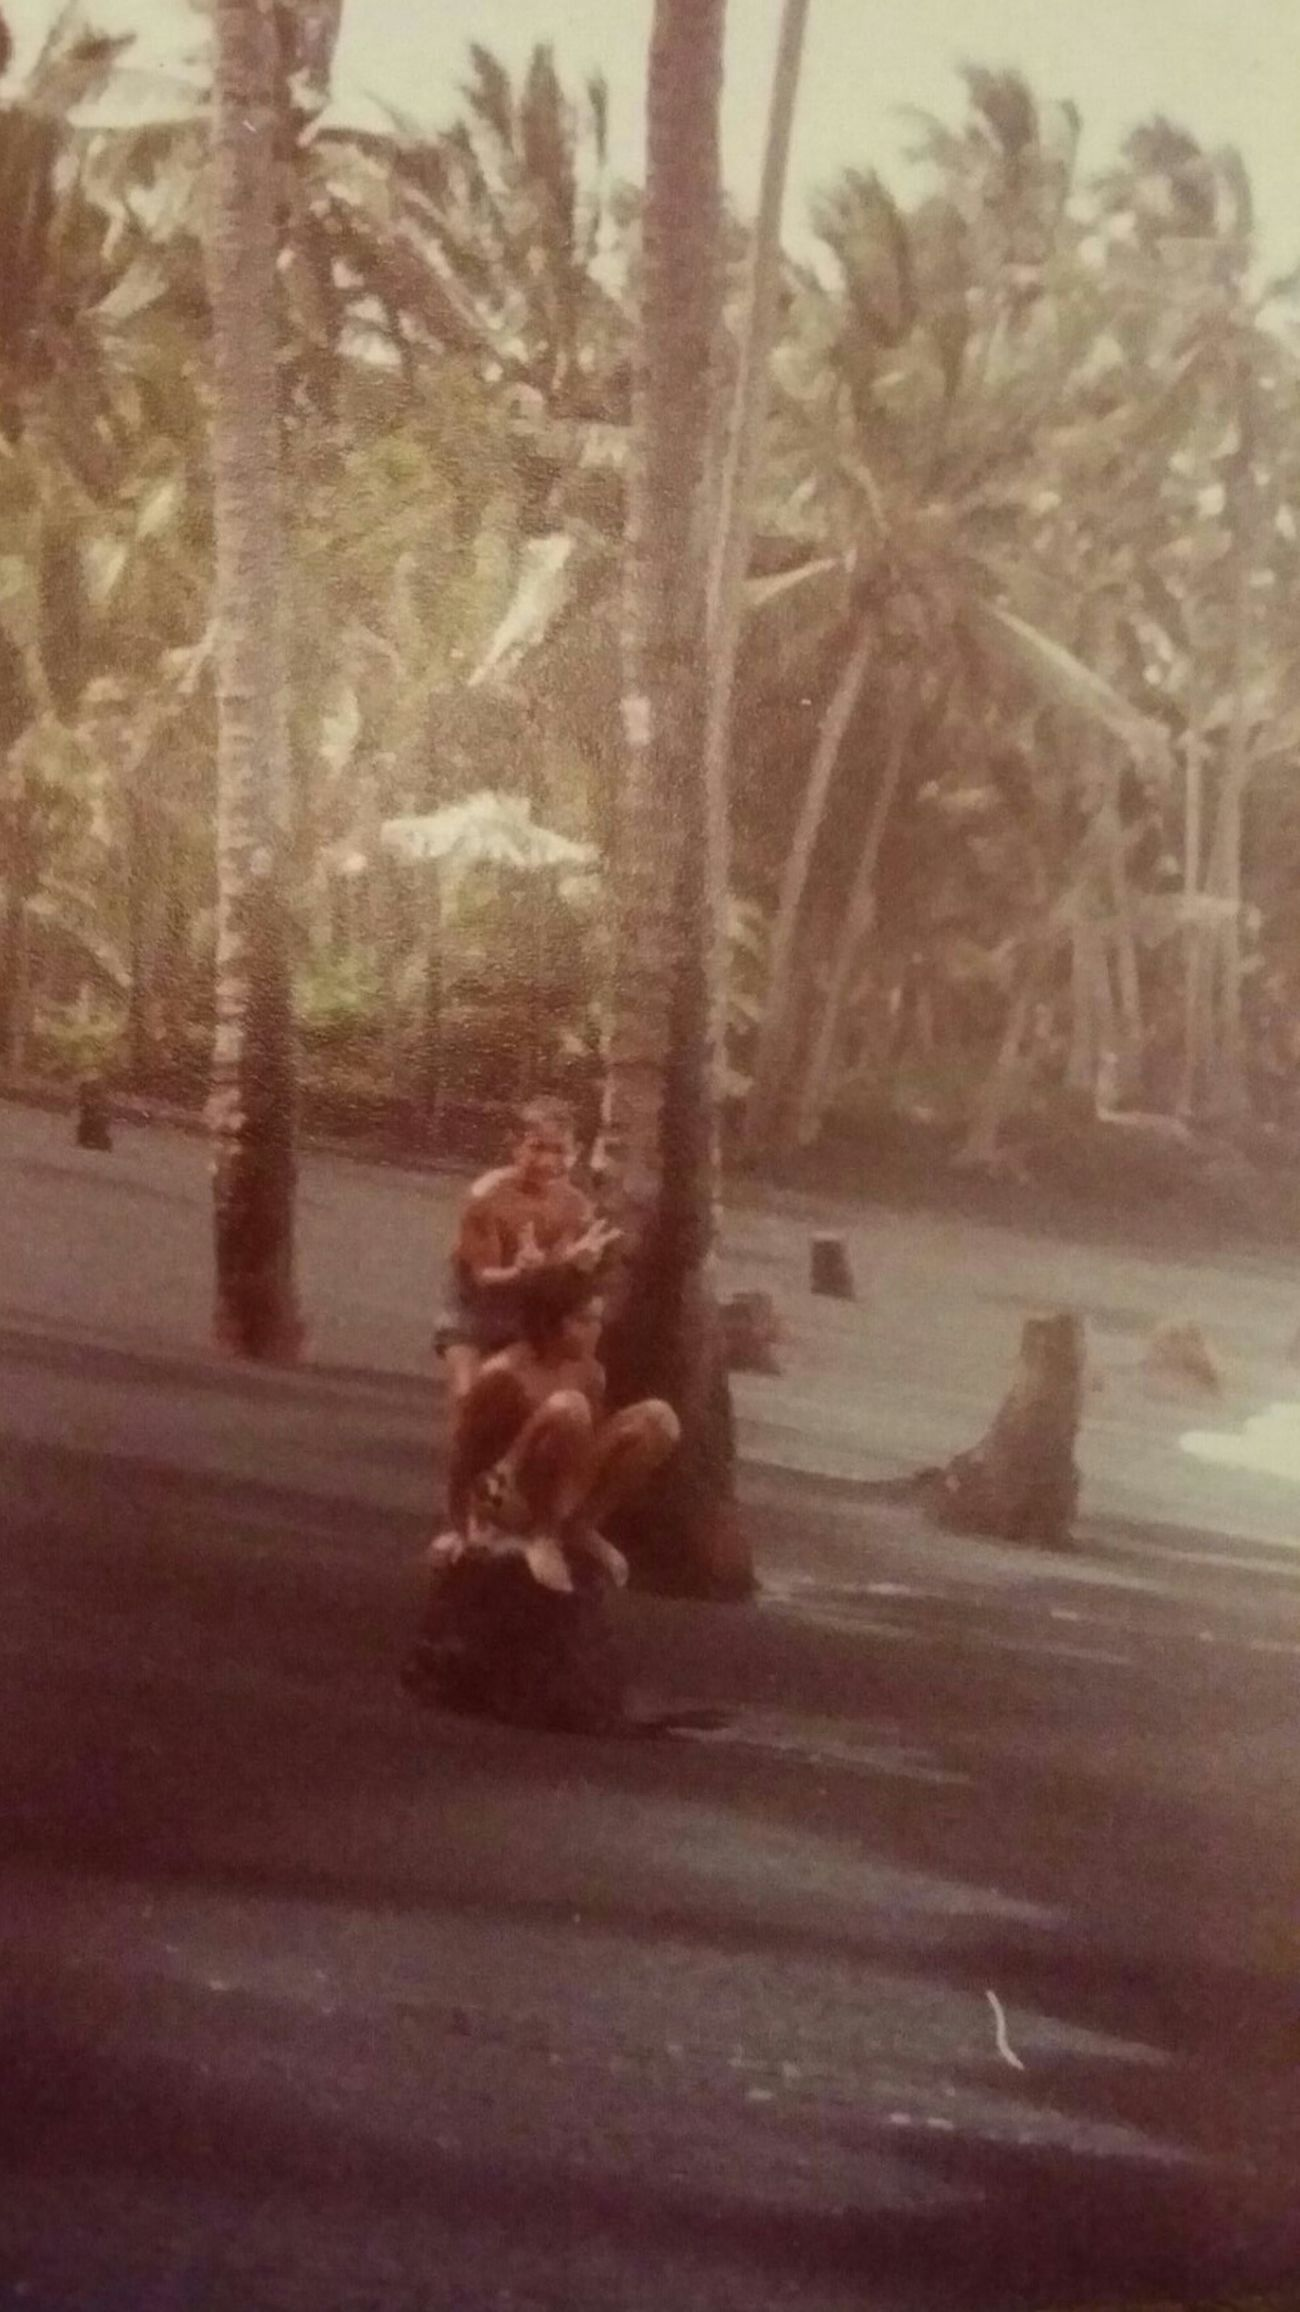 Old But Awesome Luckywelivehawaii kalapana kaimubay beforthelavaflow blacksand coconuttrees 808love Taking Photos Enjoying Life HiLife Ouradventures Ohanalove Bigislandlove